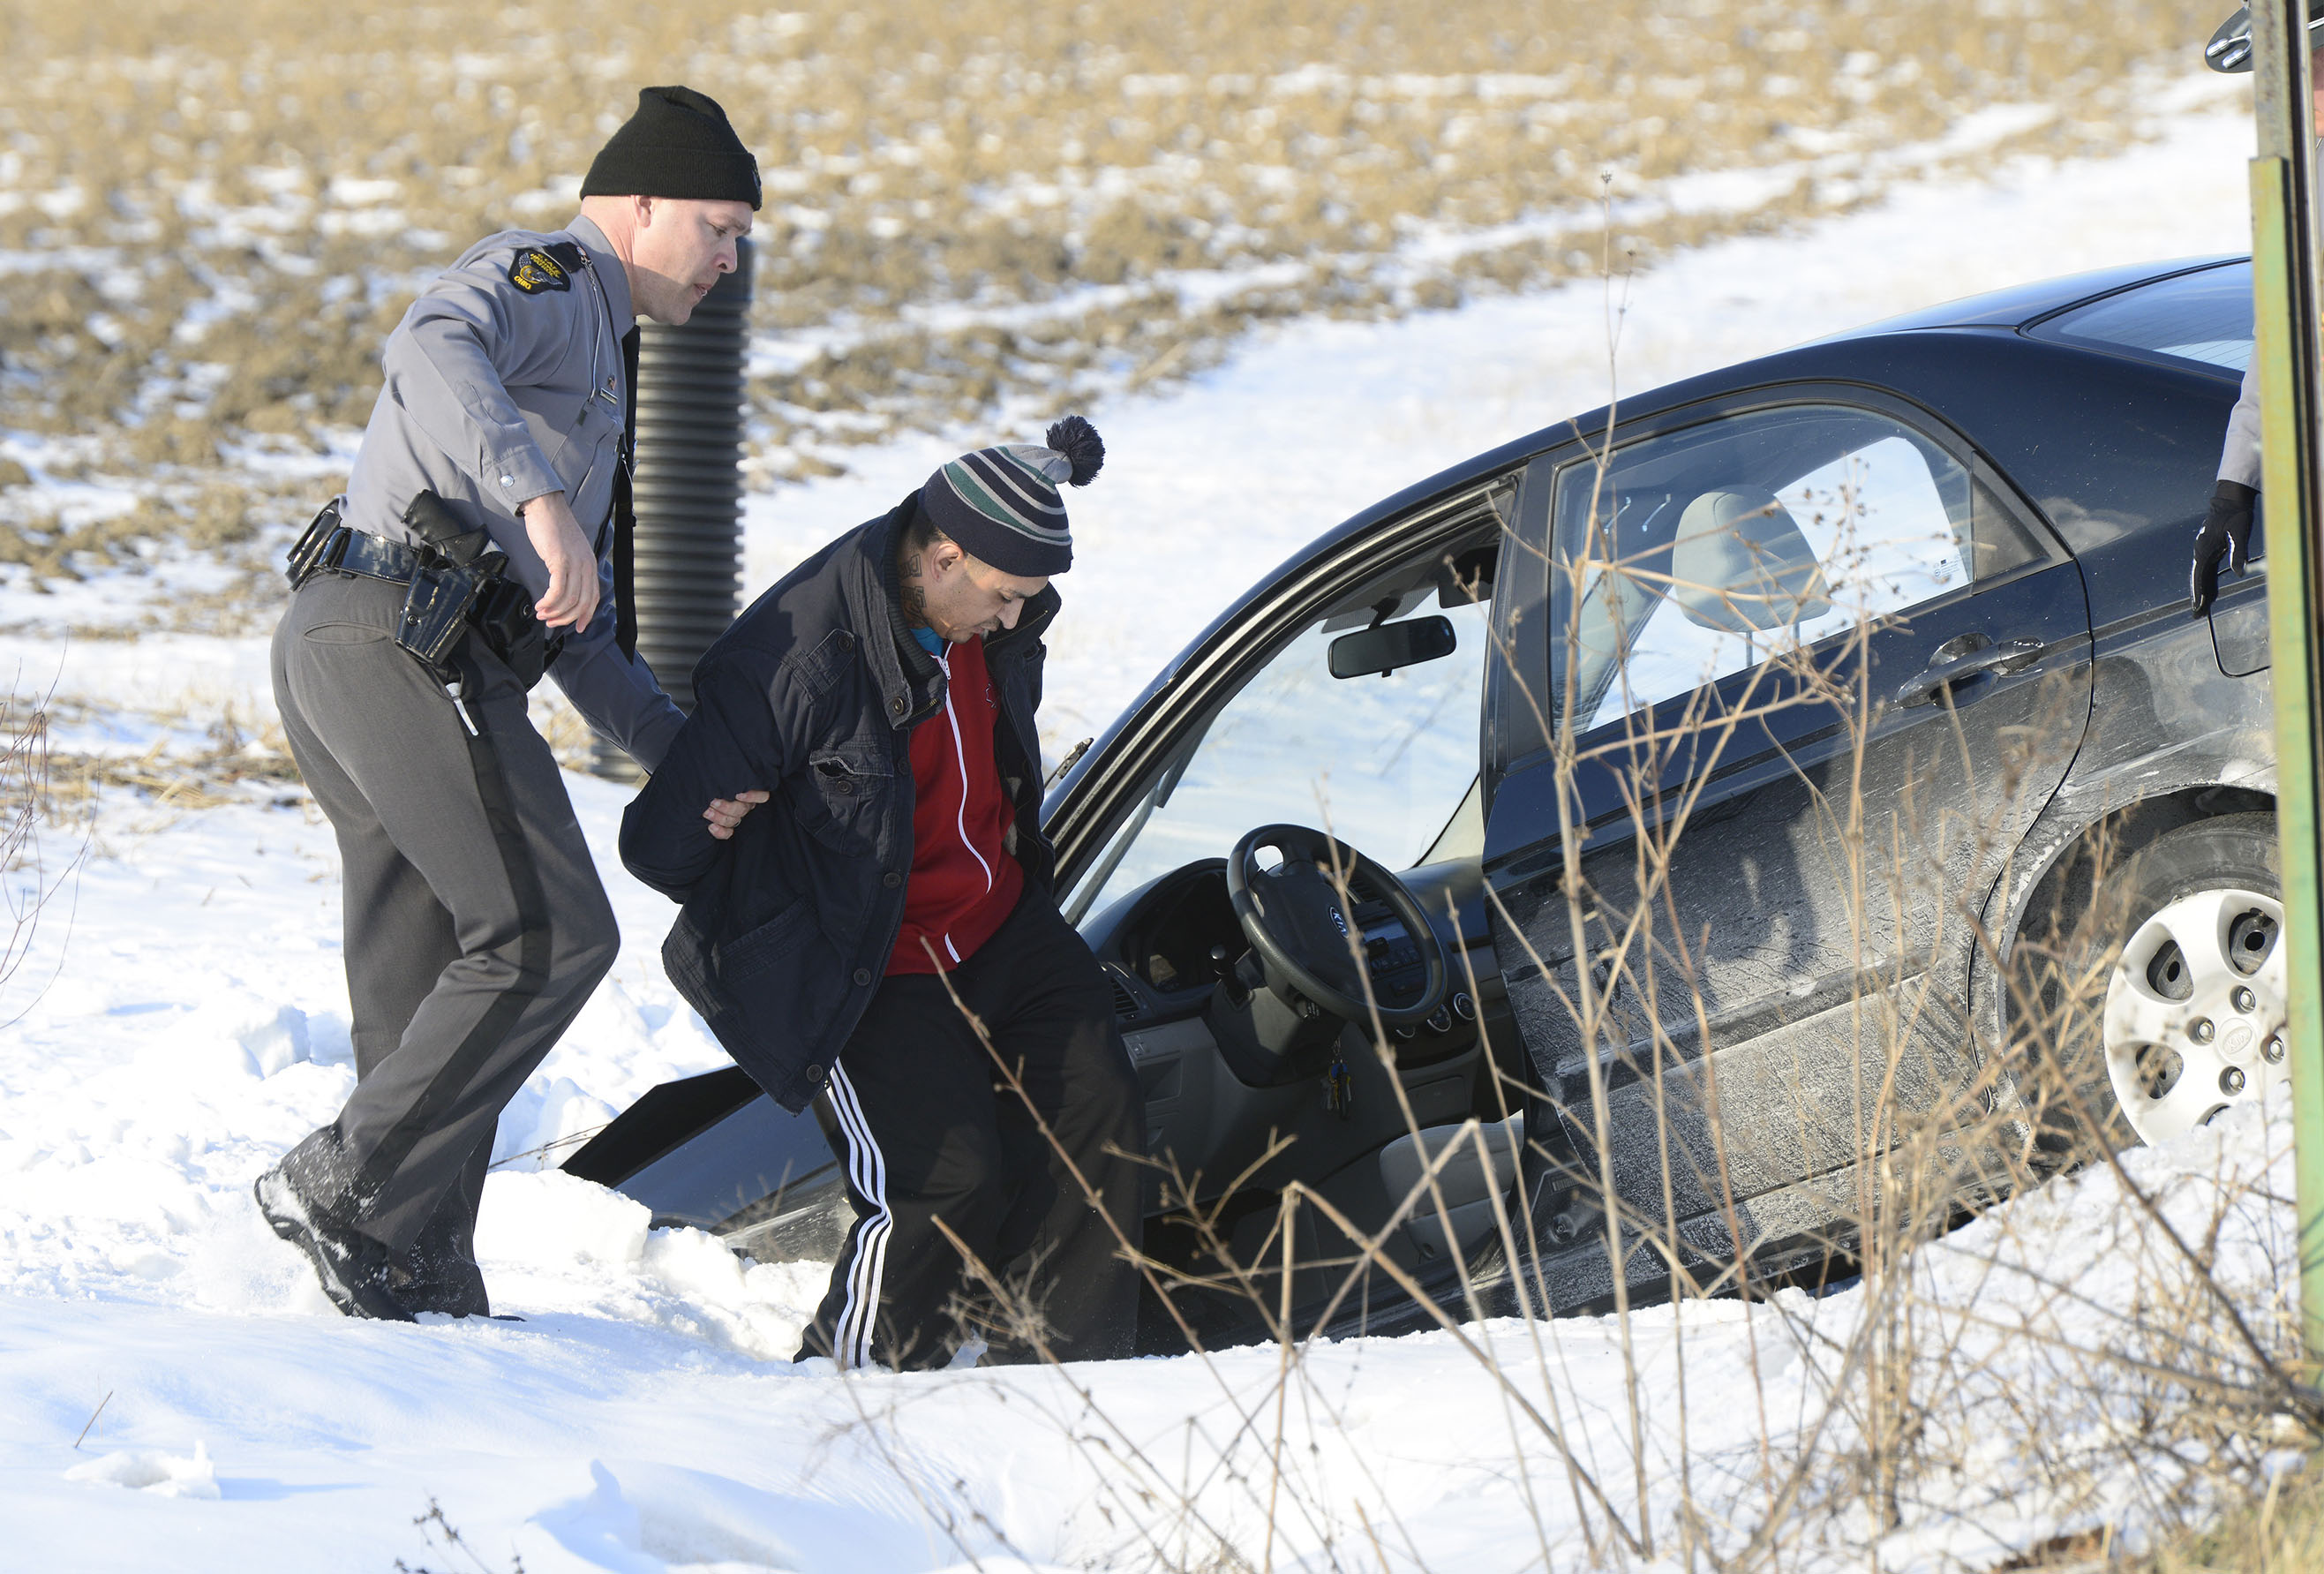 Ismael Gonzalez, 38, of Findlay is arrested on a felony warrant after leading police on a high speed chase across three counties, ending with parts flying off the car and a crash into a ditch at the corner of County Roads 153 and 106 in Lindsey on Tuesday, Jan. 19, 2106.